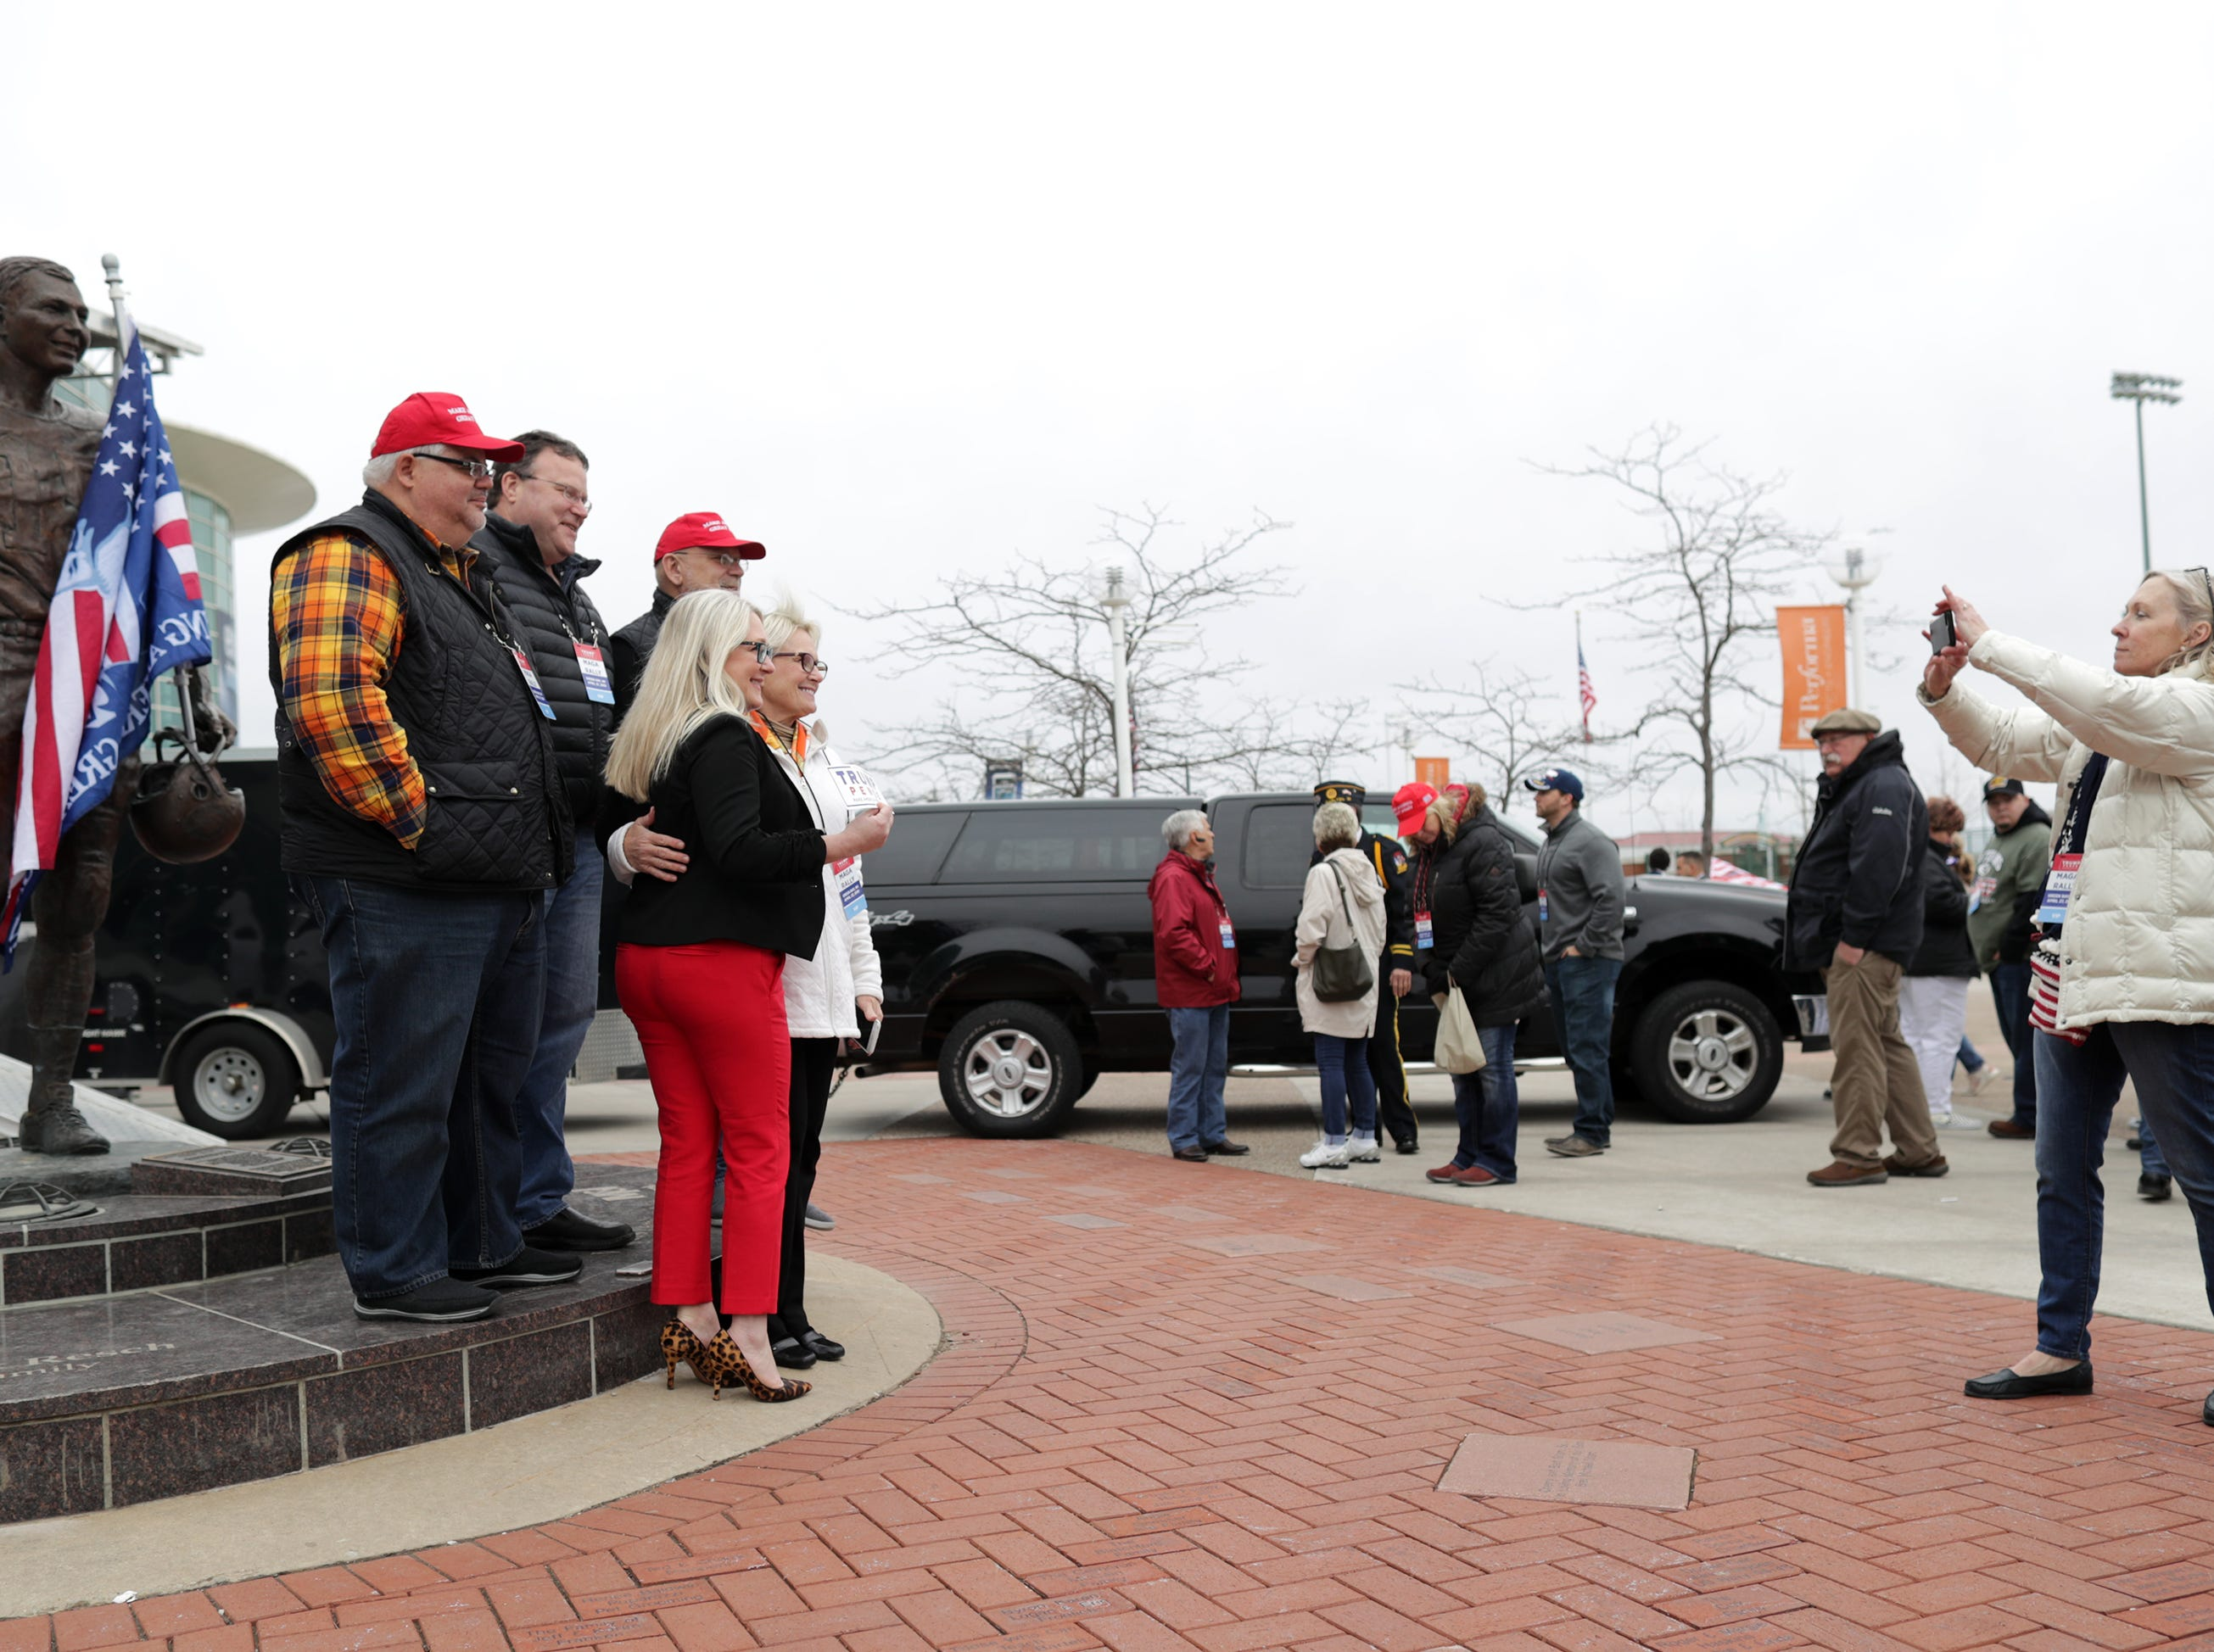 Supporters take a photo with a statue of Bart Starr before President Donald J. TrumpÕs Make America Great Again Rally on Saturday, April 27, 2019, at the Resch Center in Green Bay, Wis.